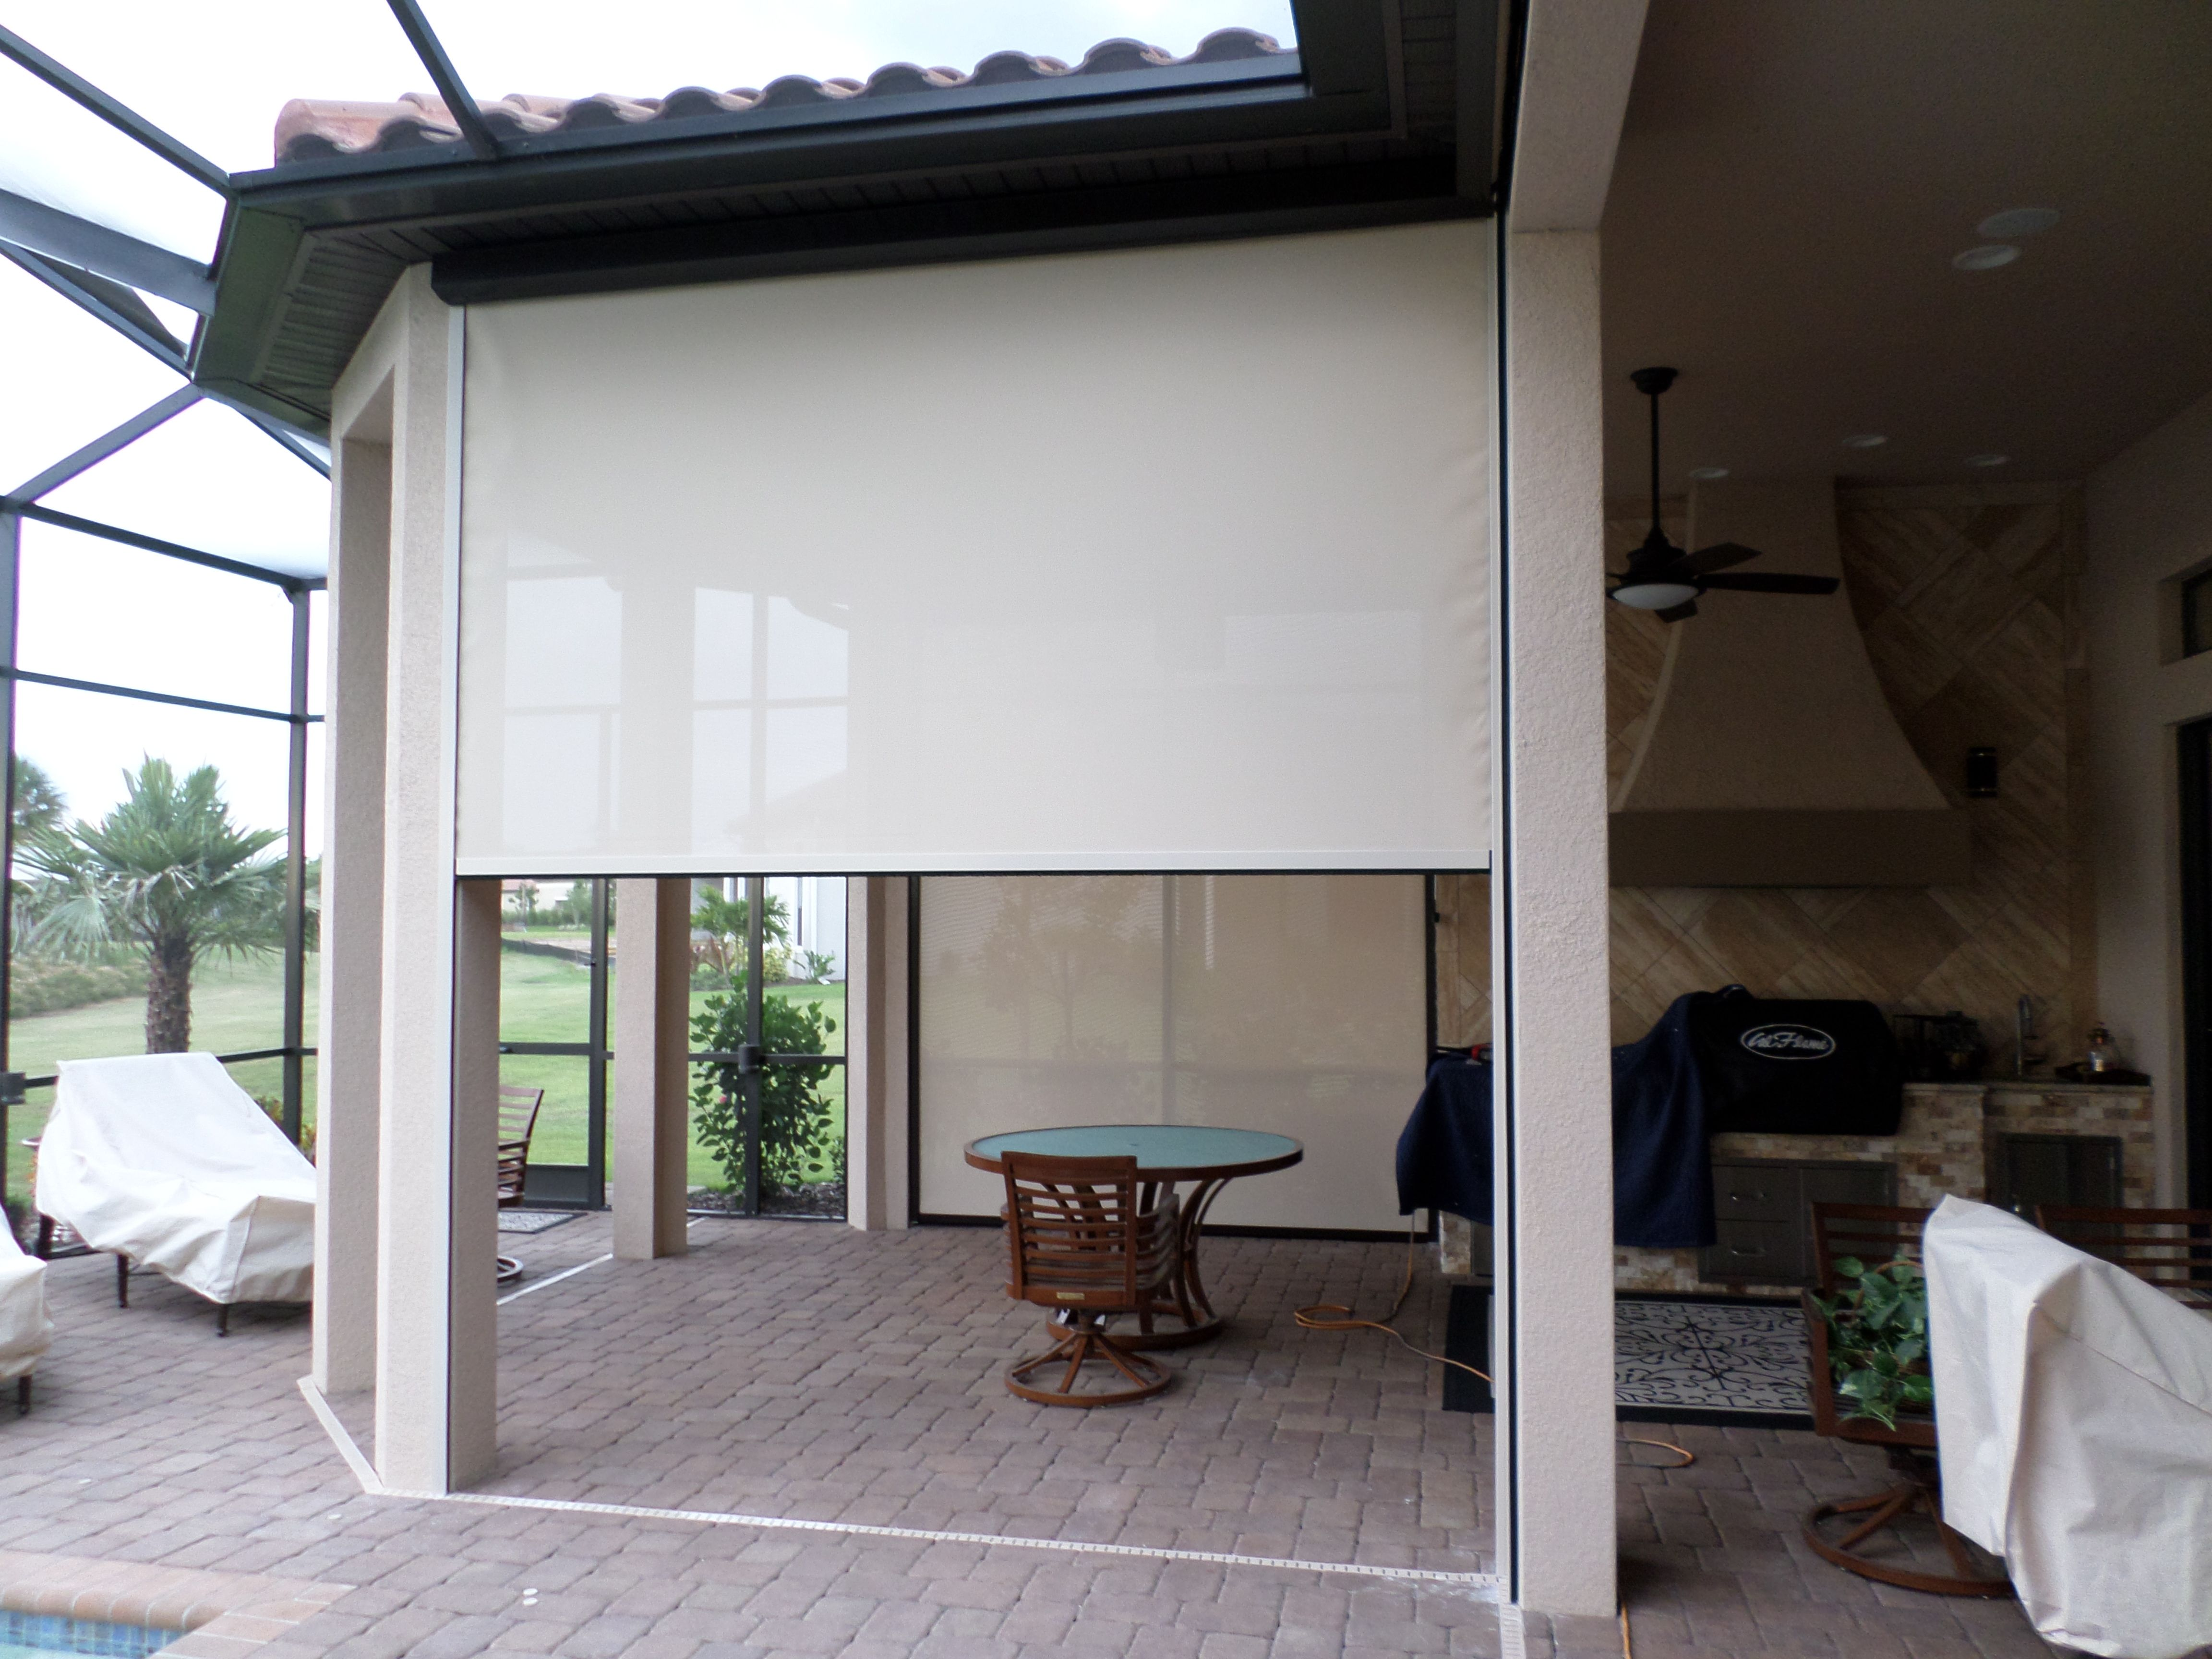 Motorized Roll Down Shade And Privacy Screen For Back Patio. This Is Just  One Of